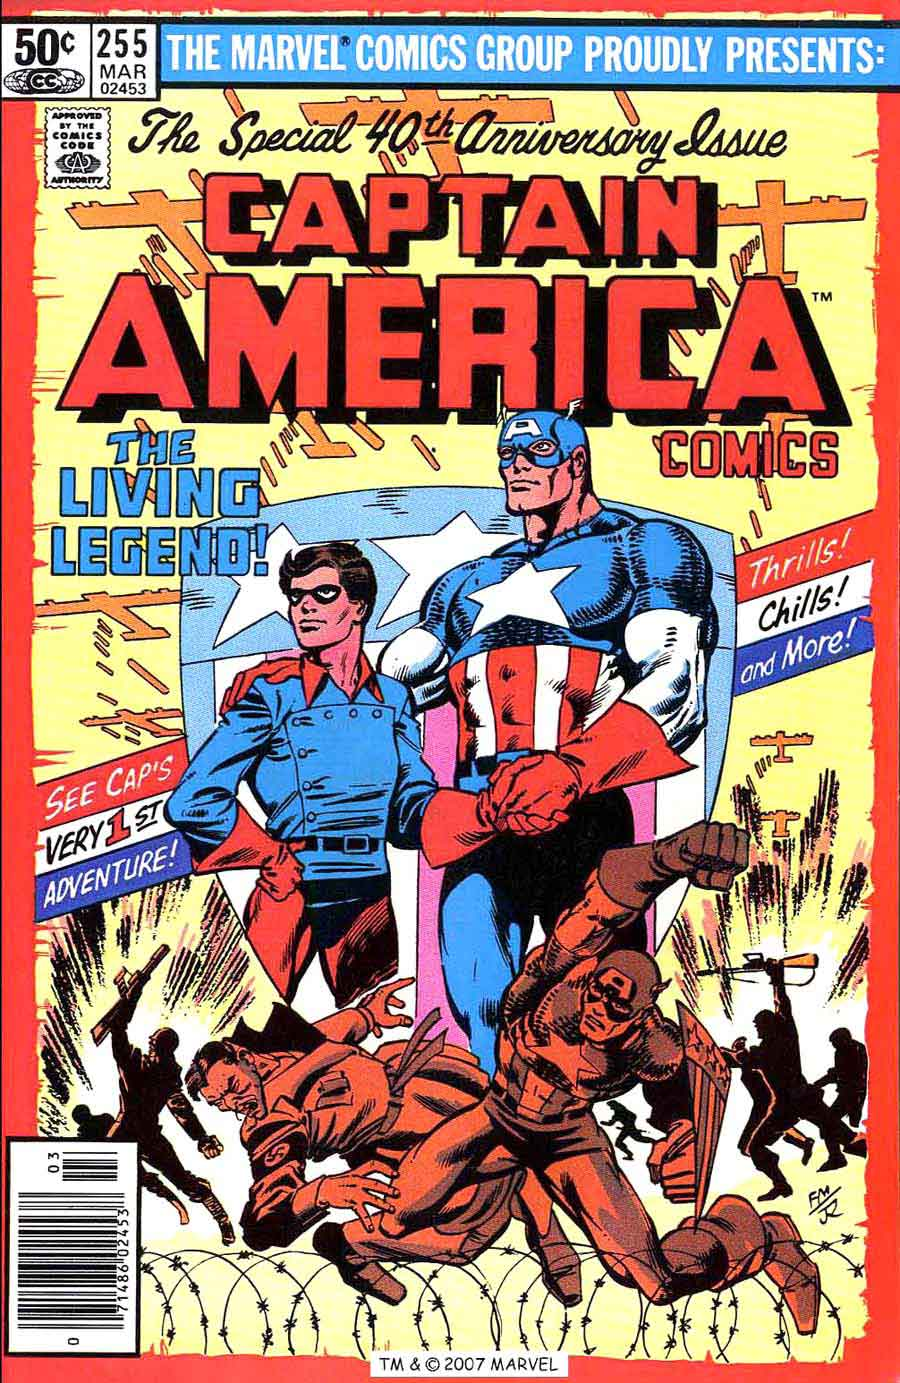 Captain America #255 marvel 1980s bronze age comic book cover art by  Frank Miller